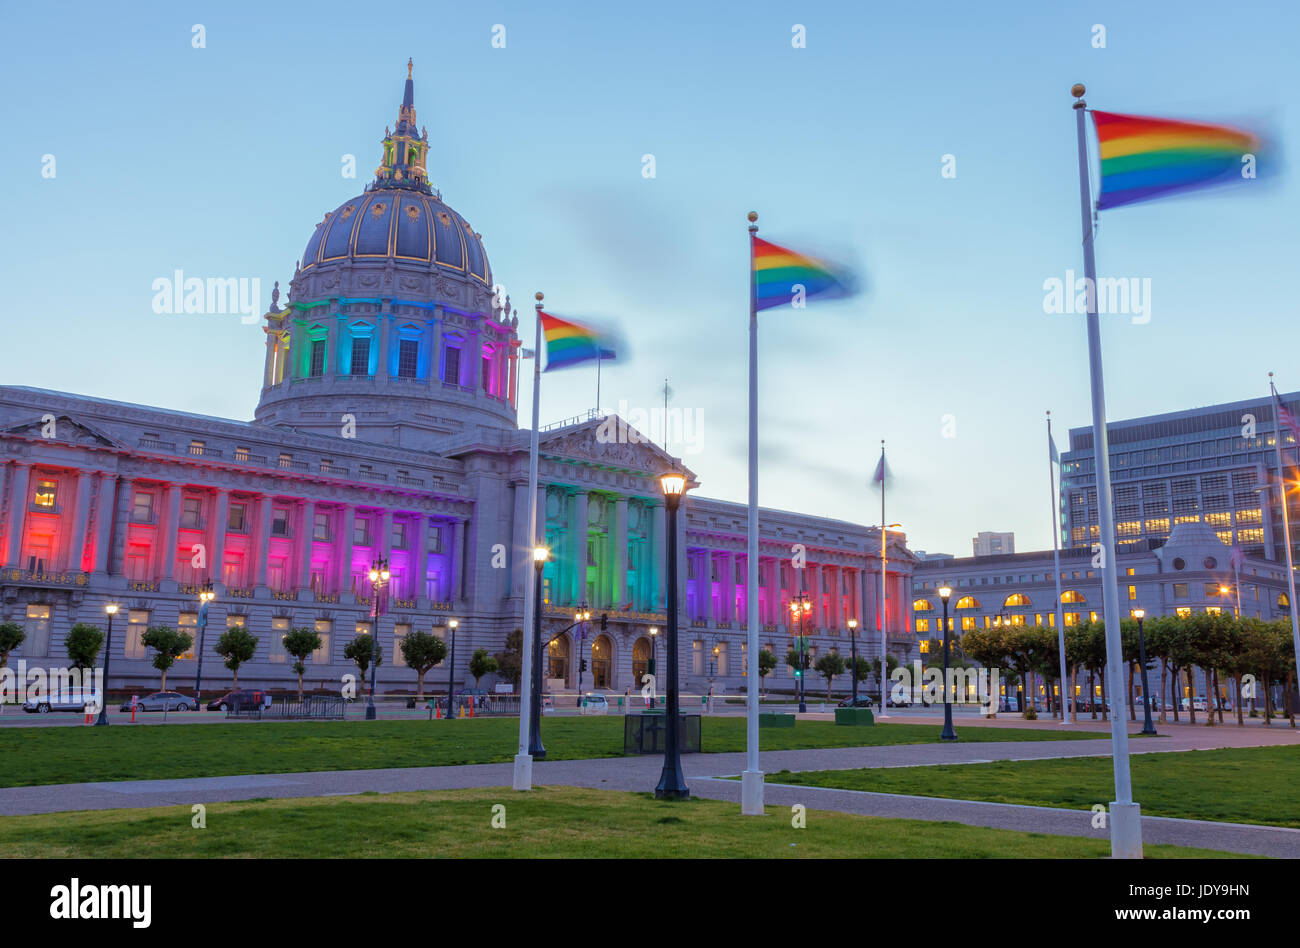 San Francisco City Hall lights up to celebrate the LGBTQ pride month - Stock Image